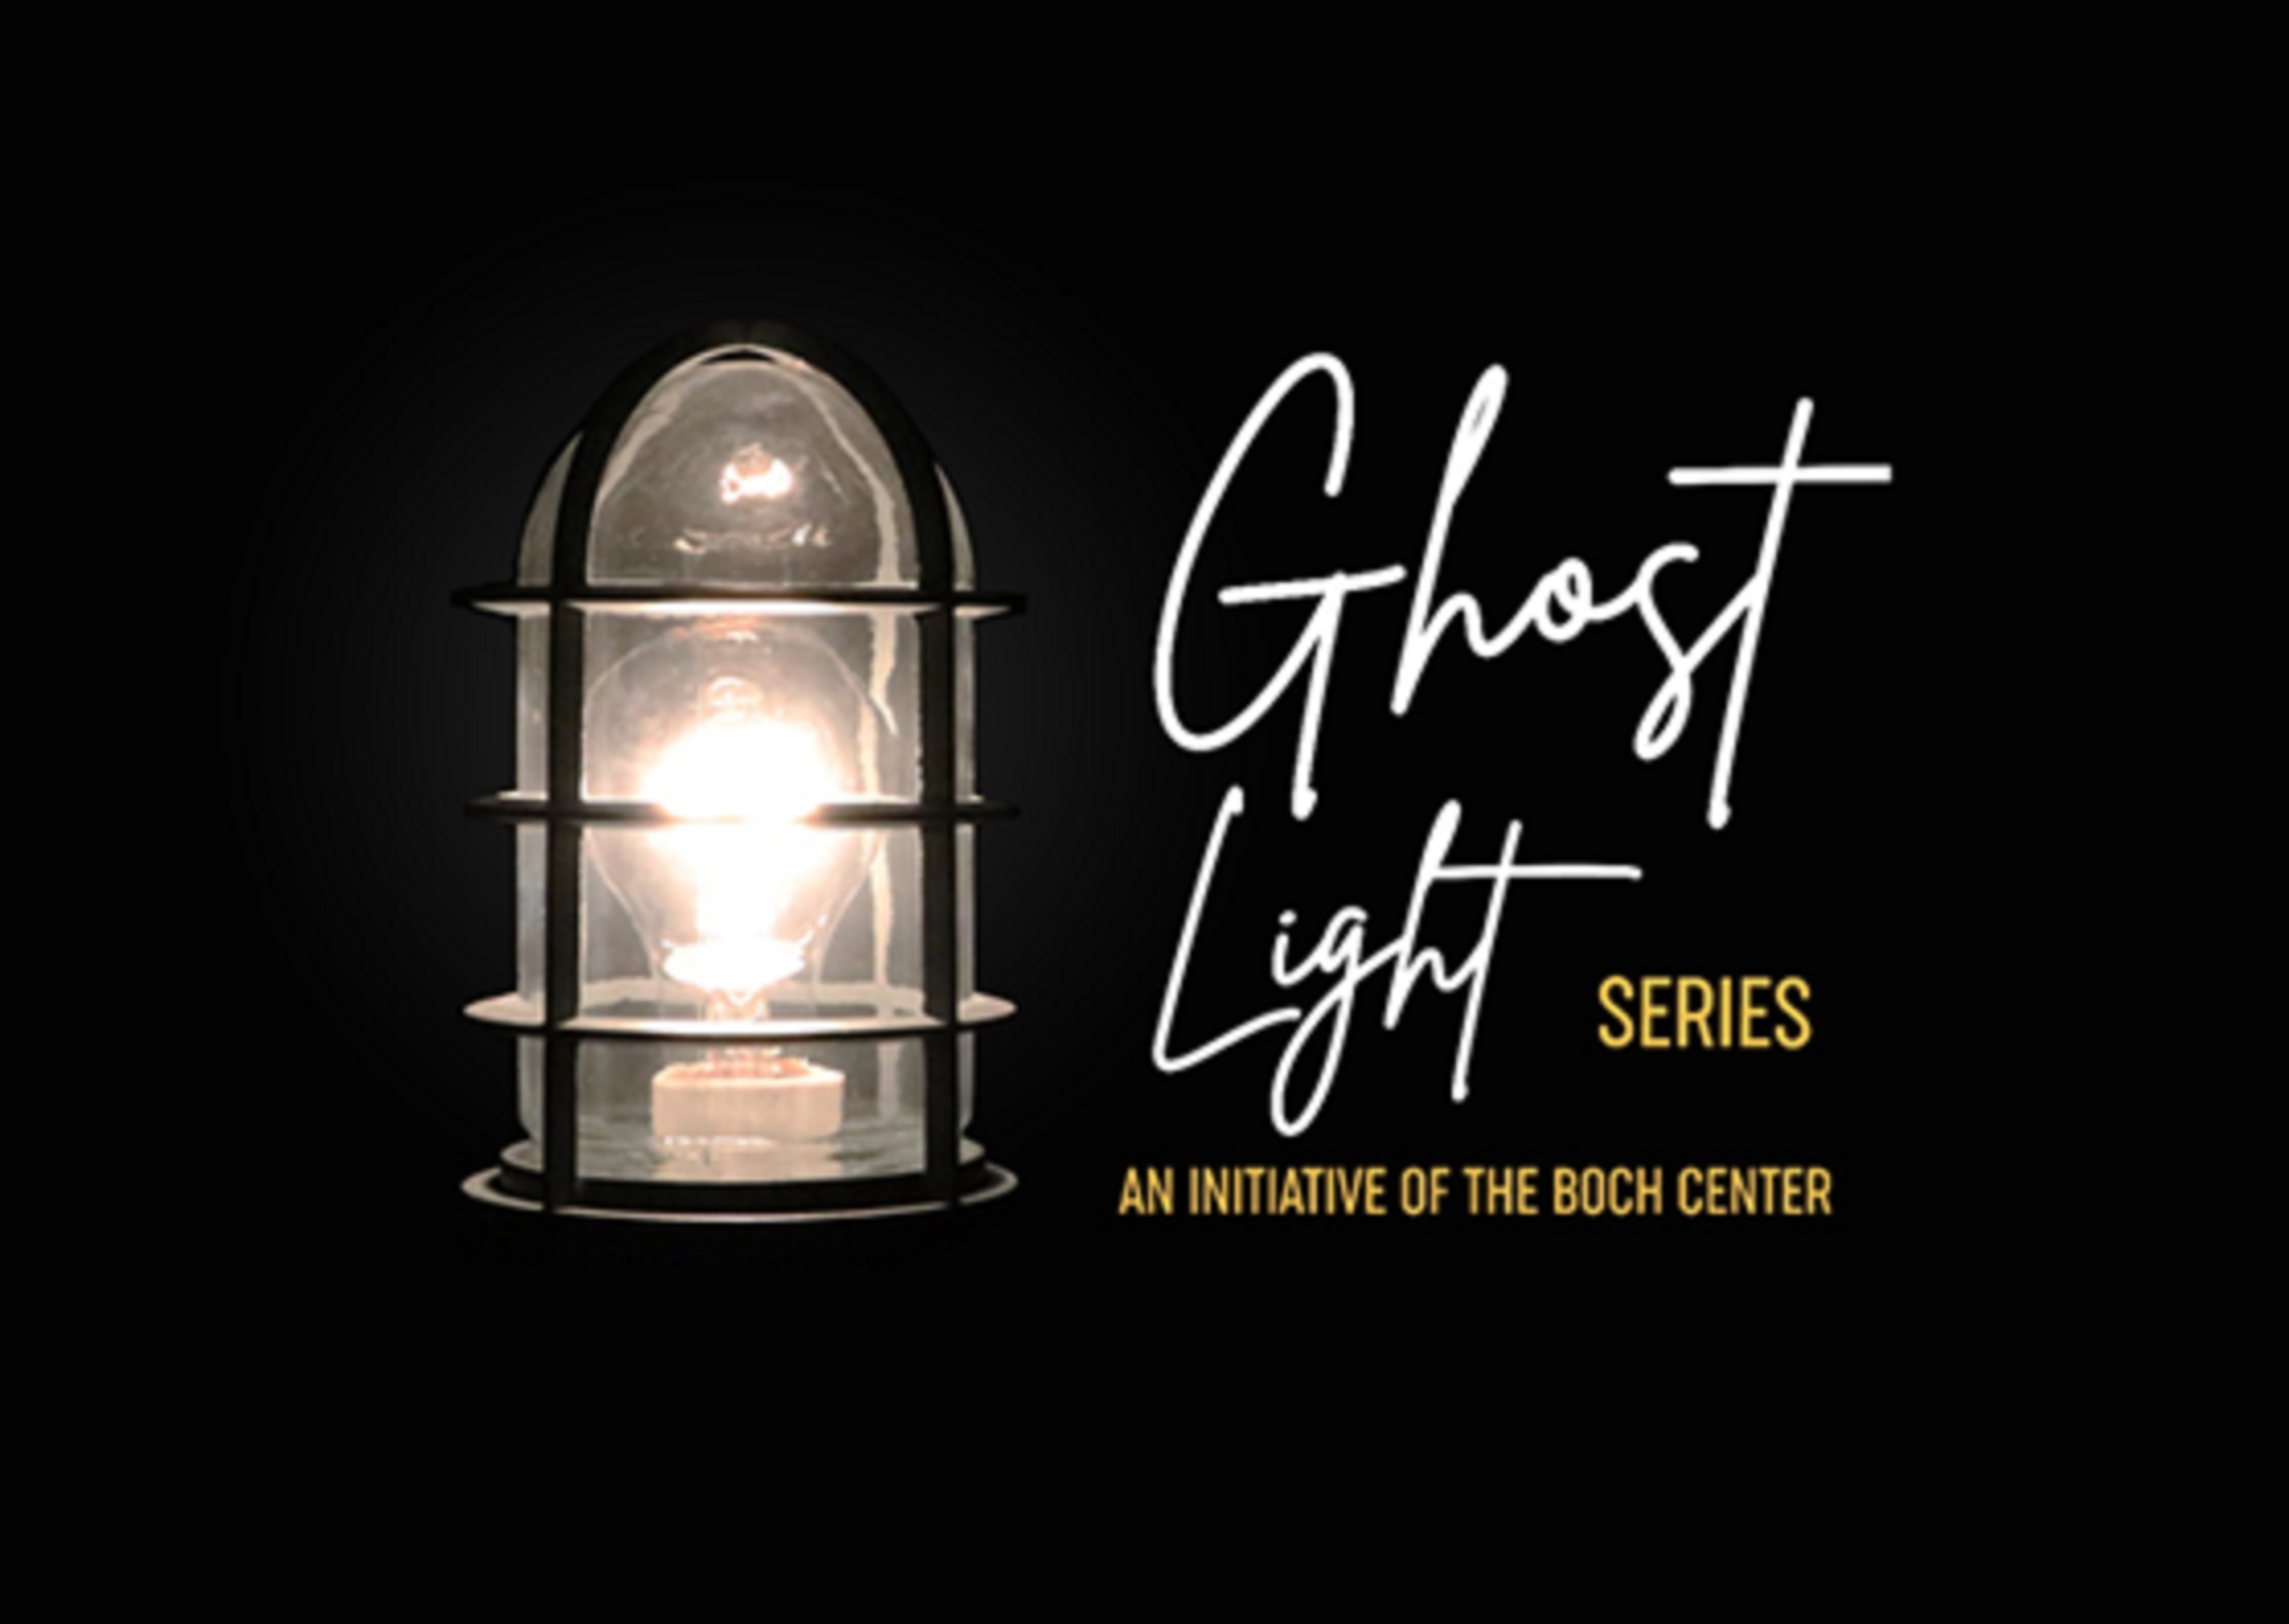 Jay Psaros, The Restless Age, and Alice Howe Perform on Boch Center's Ghost Light Series